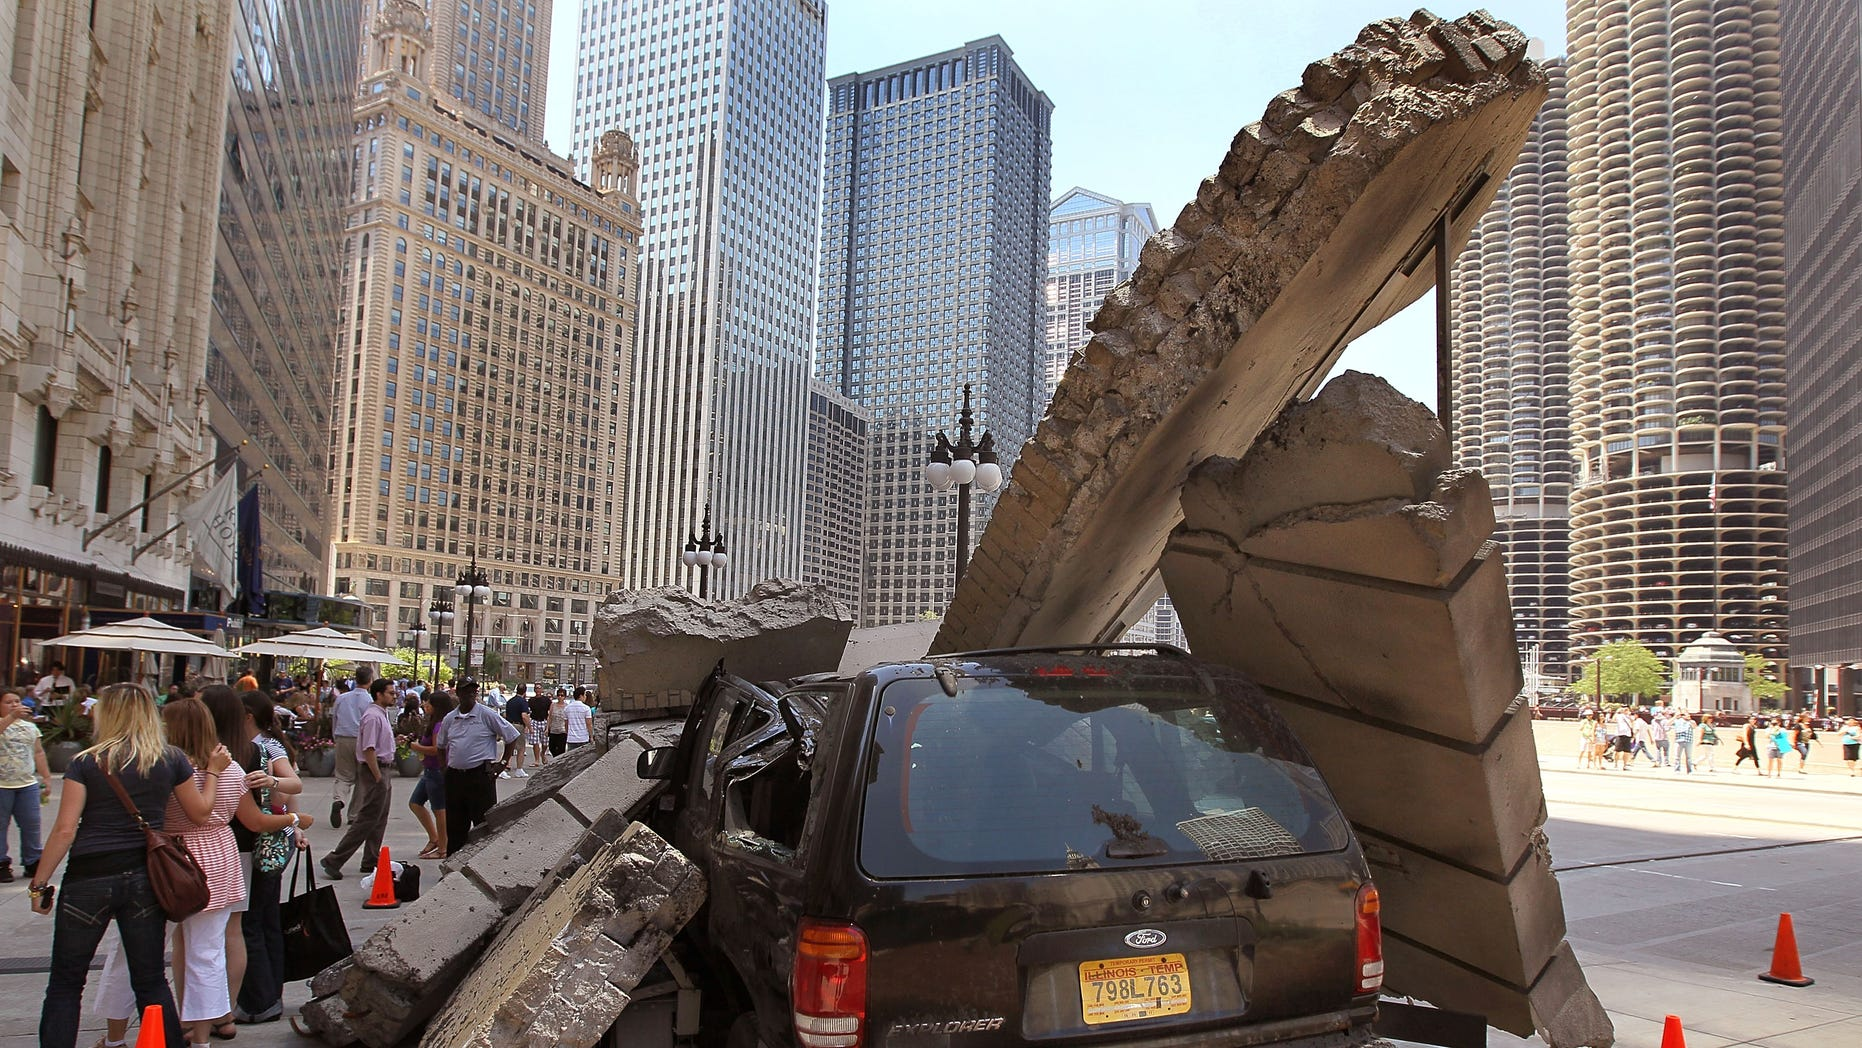 CHICAGO - JULY 16:  A movie prop sits along Wacker Drive during the filming of the movie Transformers 3 in Chicago, Illinois.